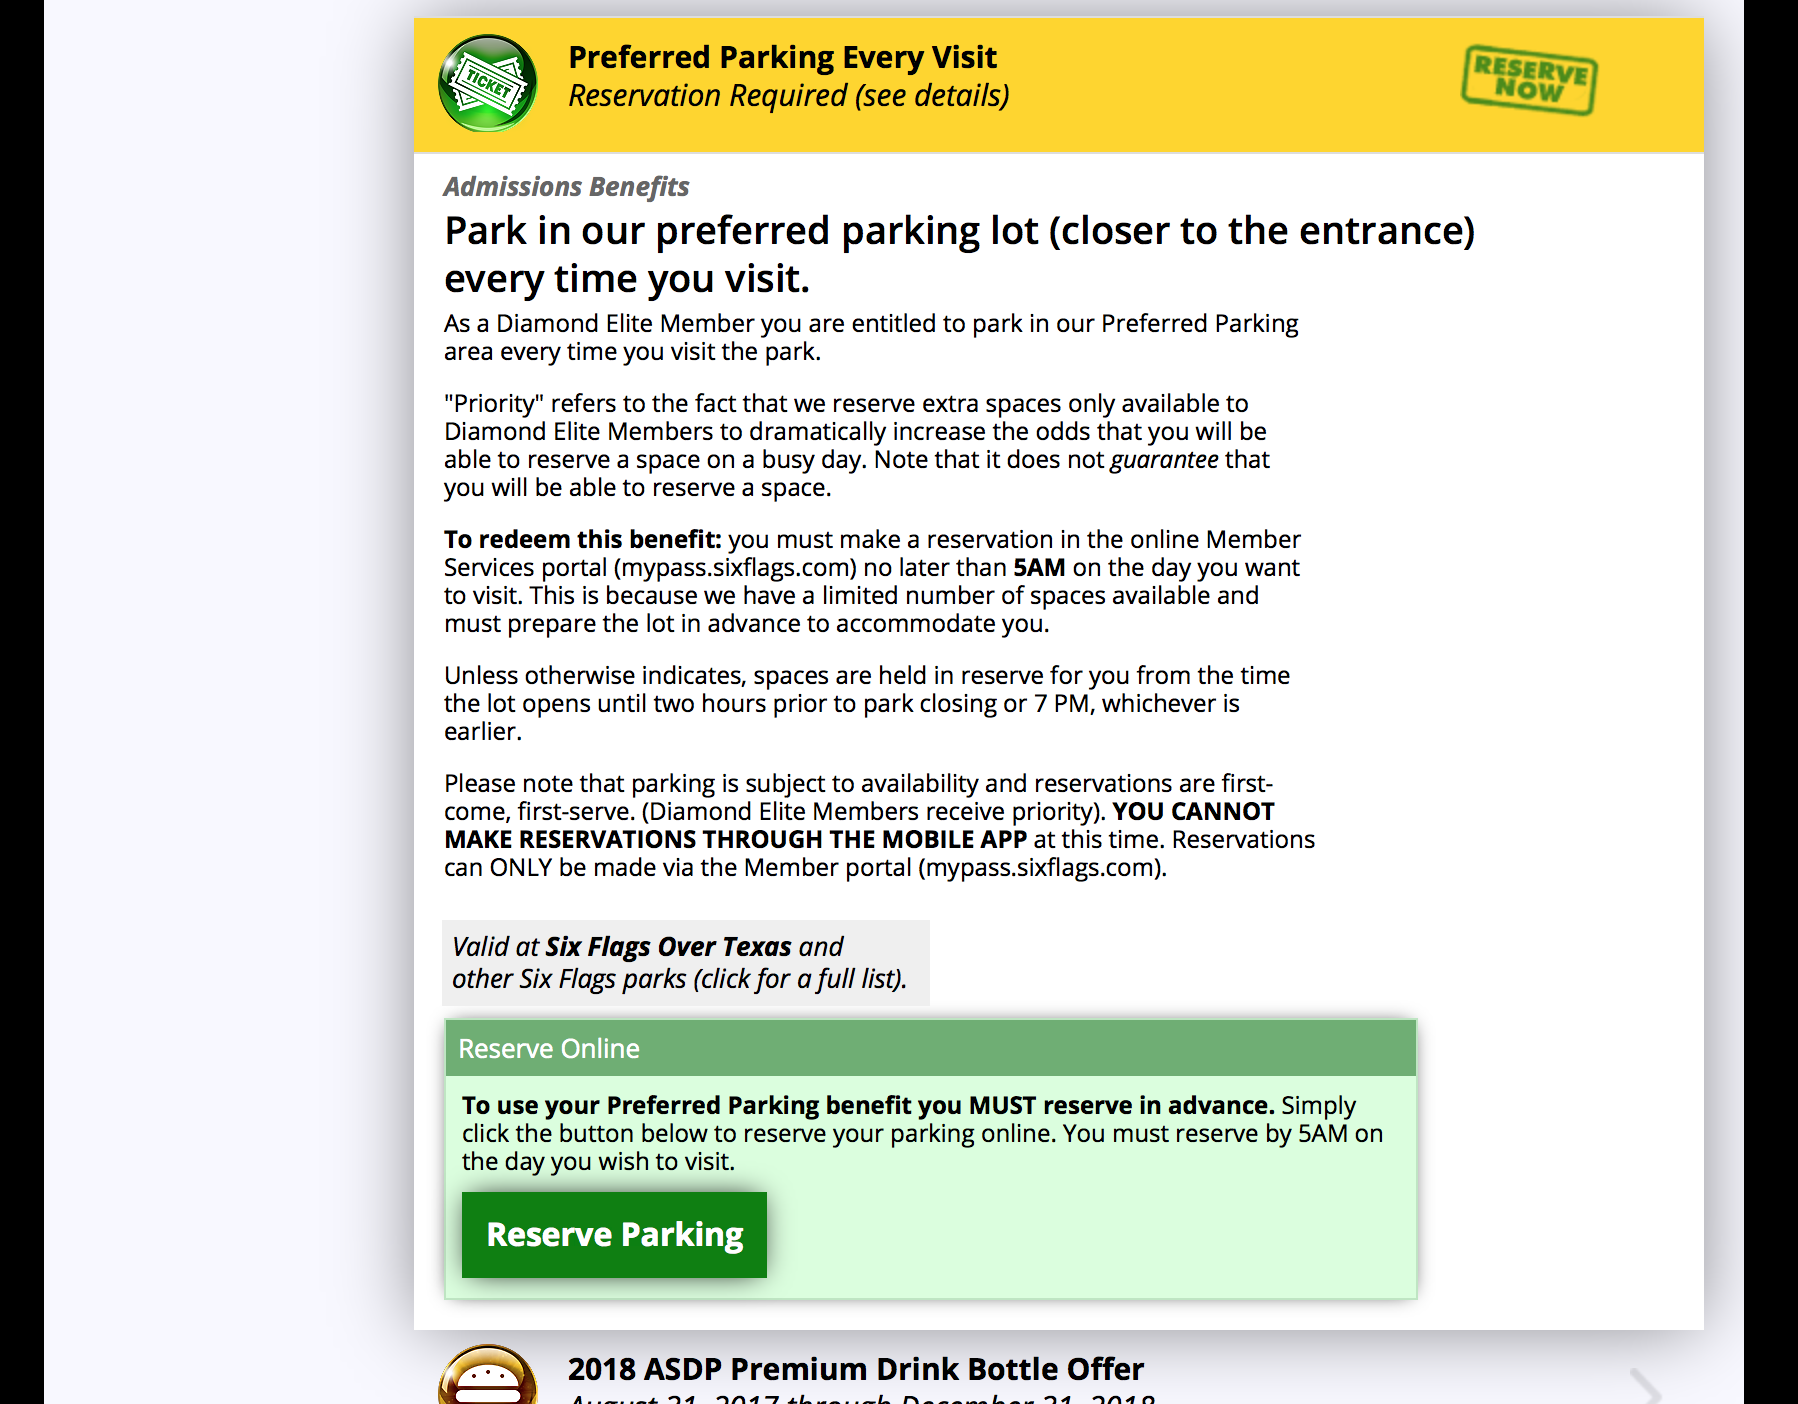 "Once you click this option a box will open up. Please read the information carefully and then click the ""Reserve Parking"" button at the bottom."